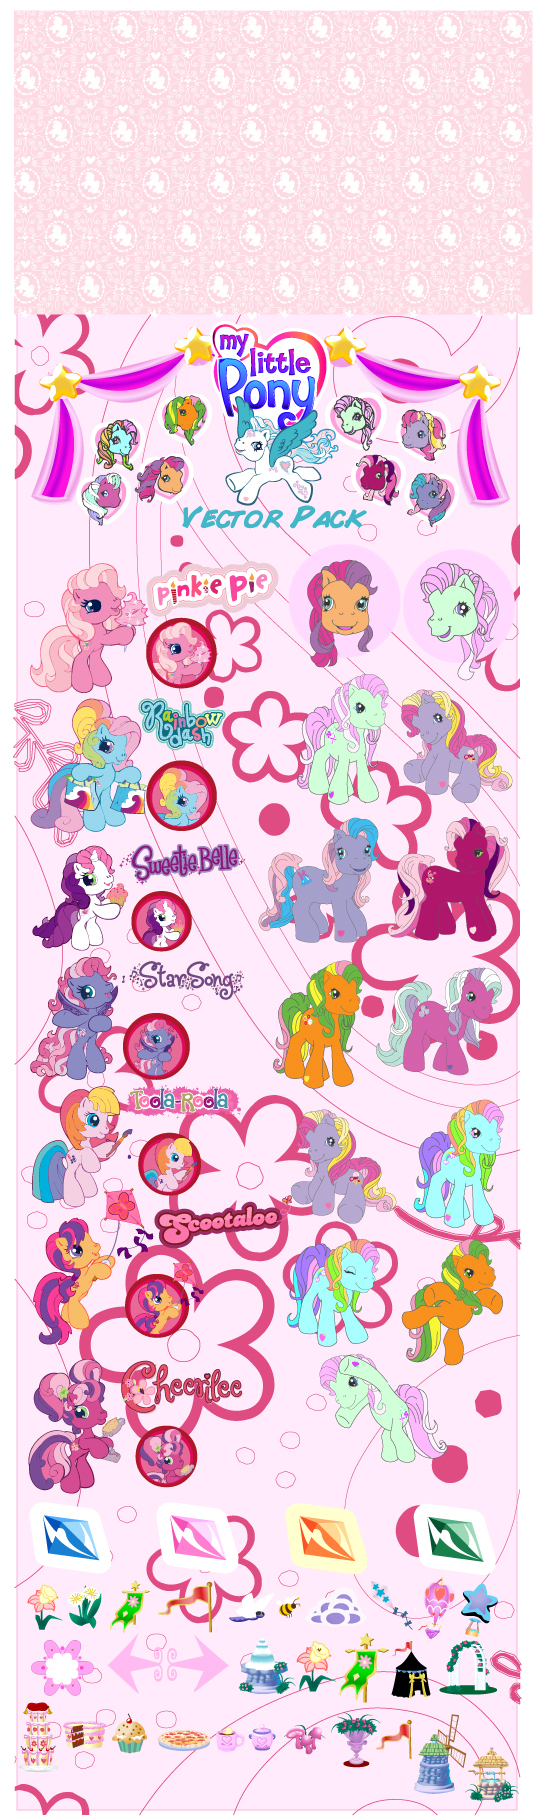 My little pony cartoon clip art Free Vector / 4Vector